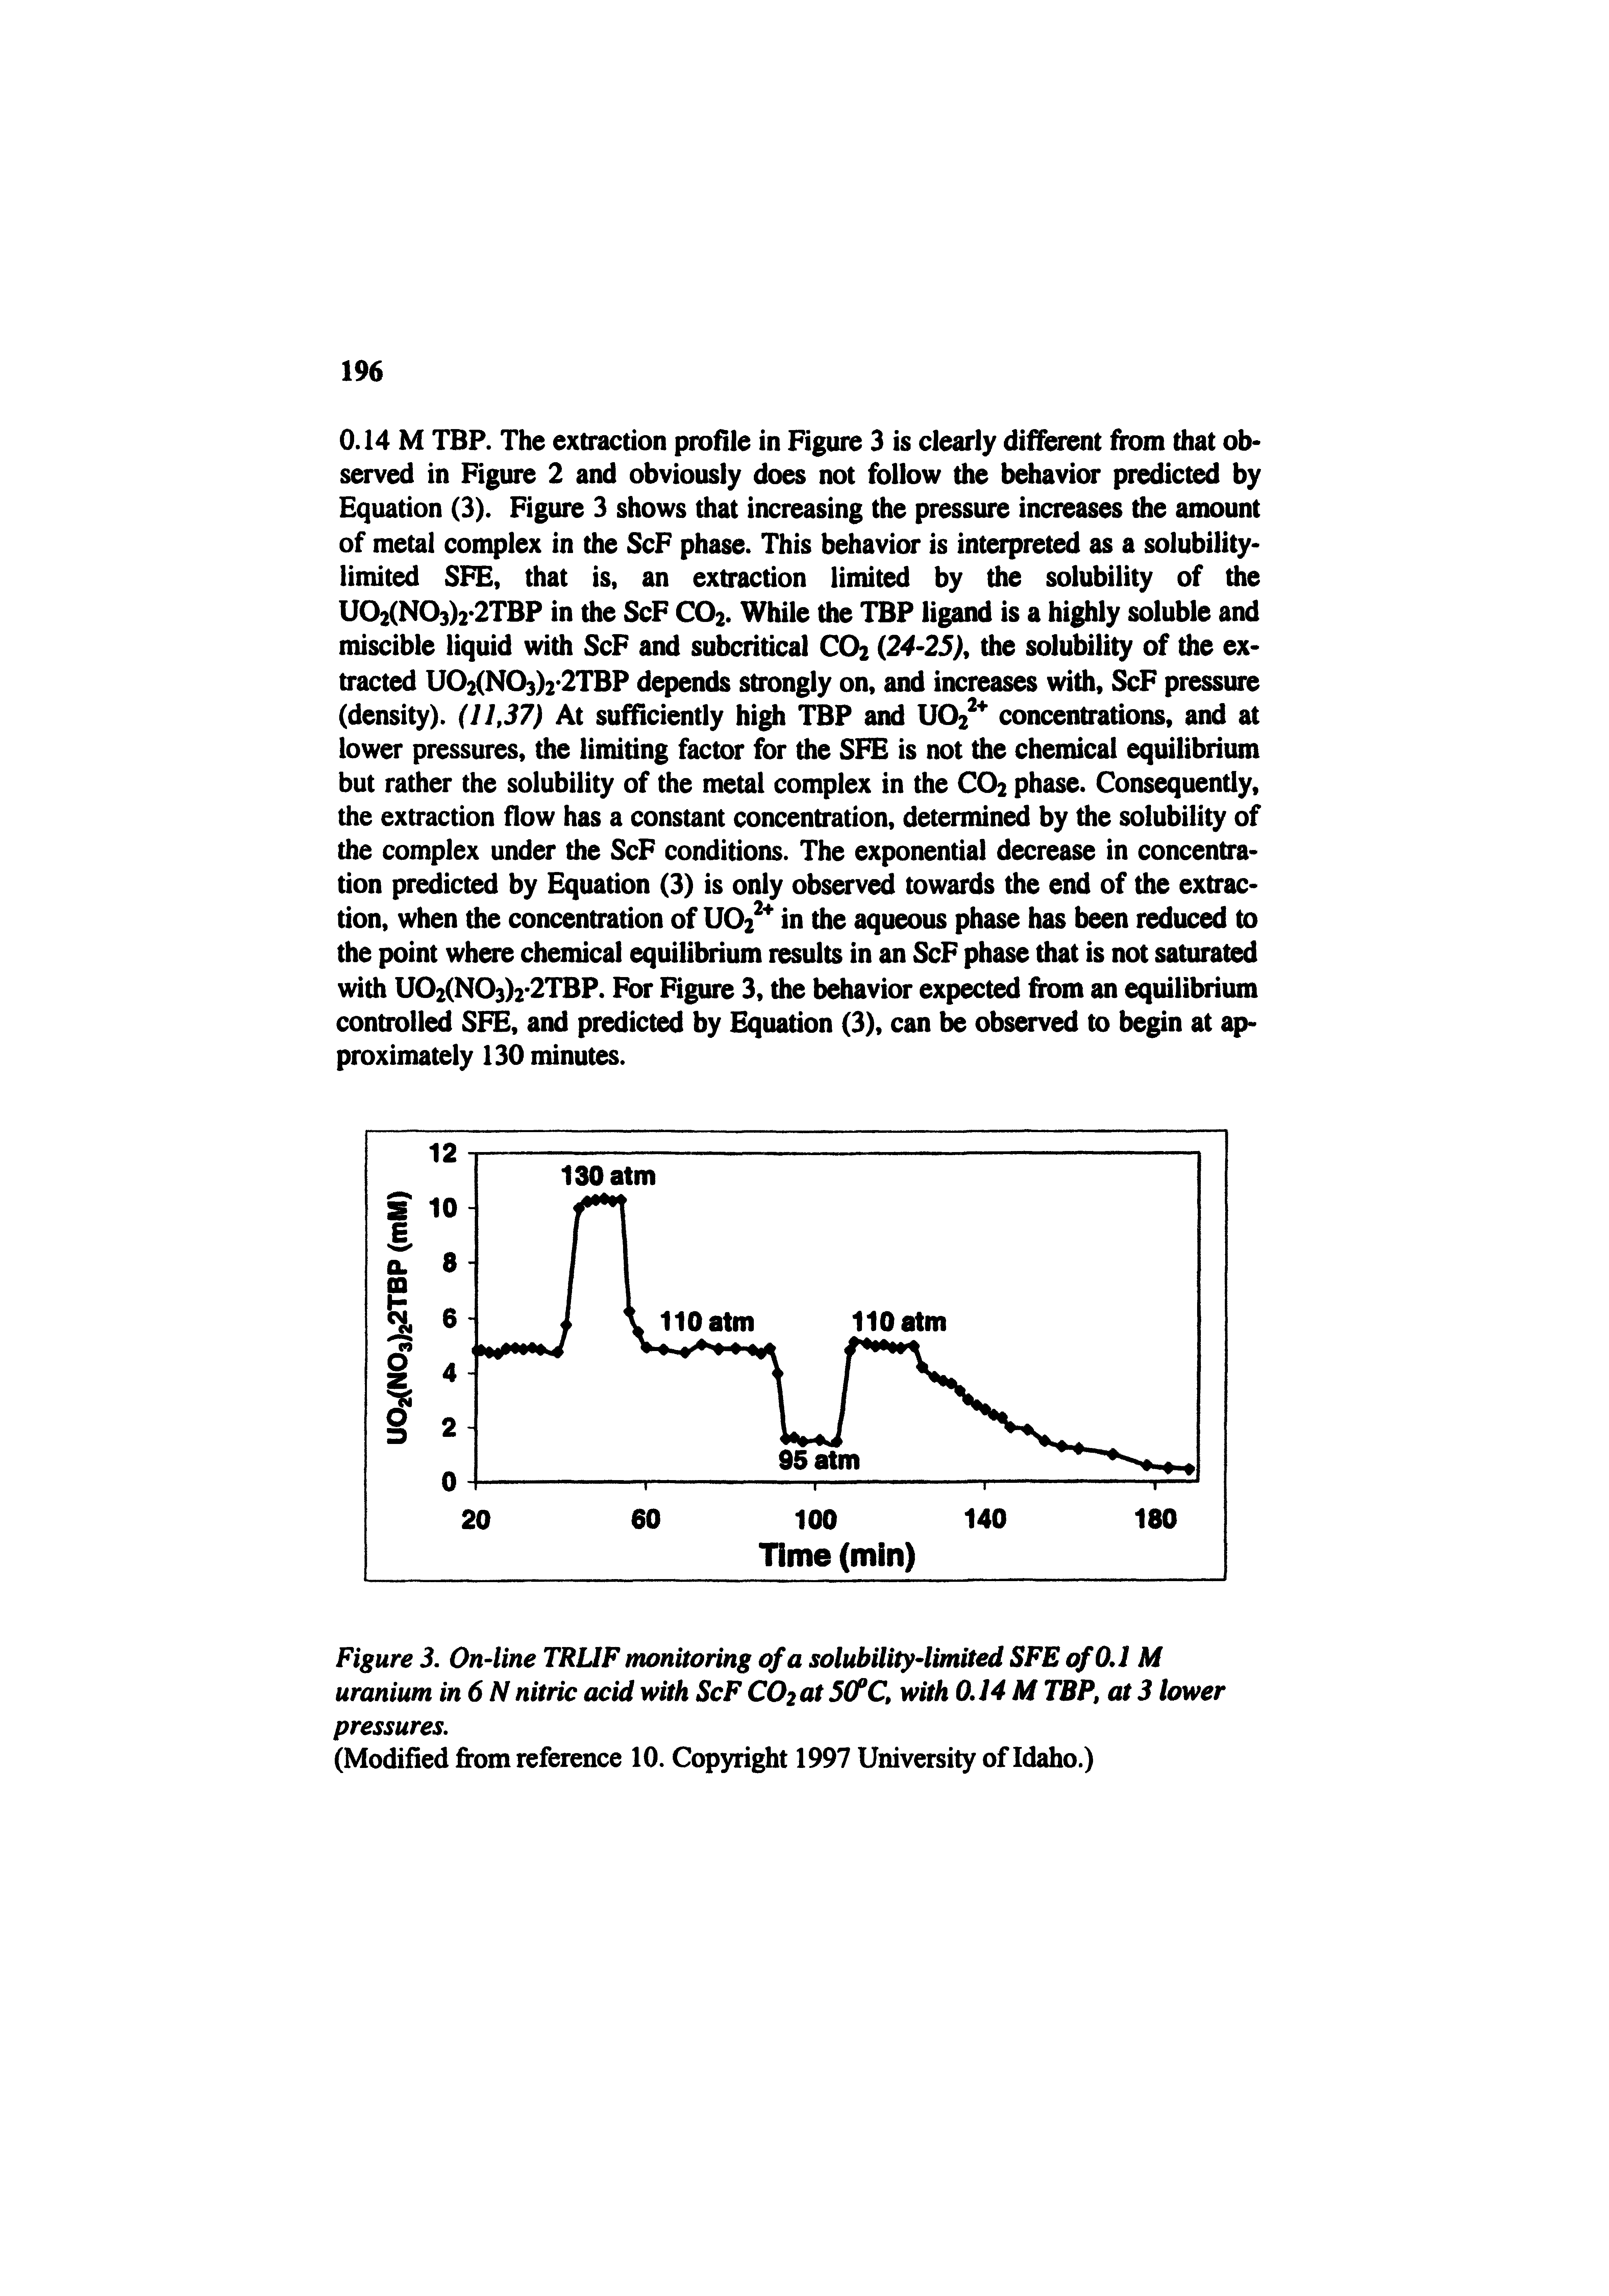 "Figure 3. On-line TRUF monitoring of a solubility-limited SFE of 0.1 M uranium in6N <a href=""/info/nitric_acid"">nitric acid</a> with ScF COzot 5(fC, with 0.14 M TBP, at 3 lower pressures."